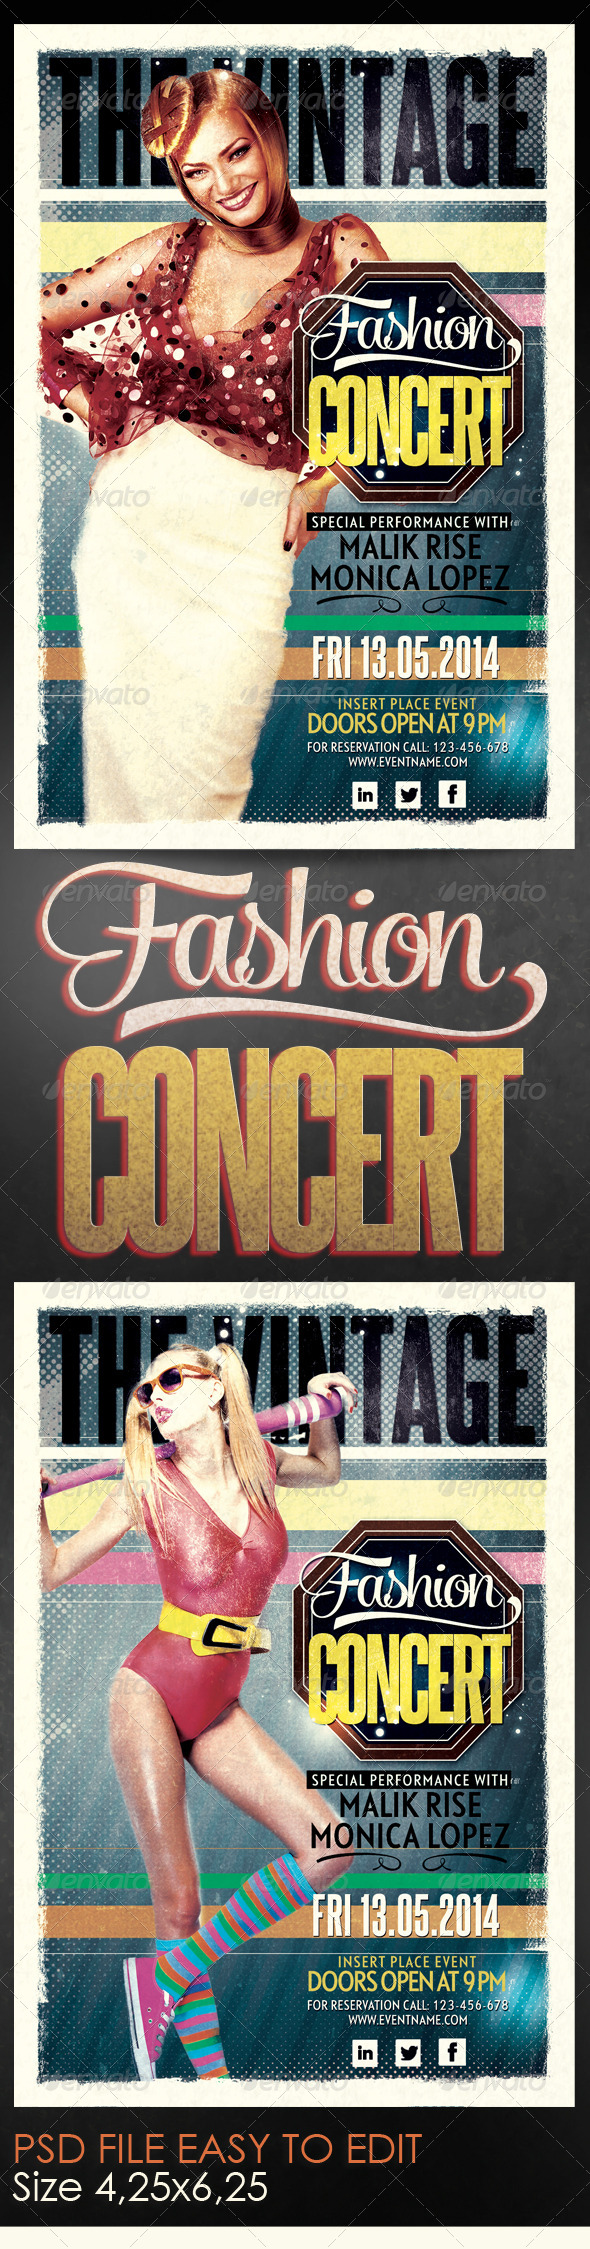 Fashion Concert Flyer Template - Clubs & Parties Events